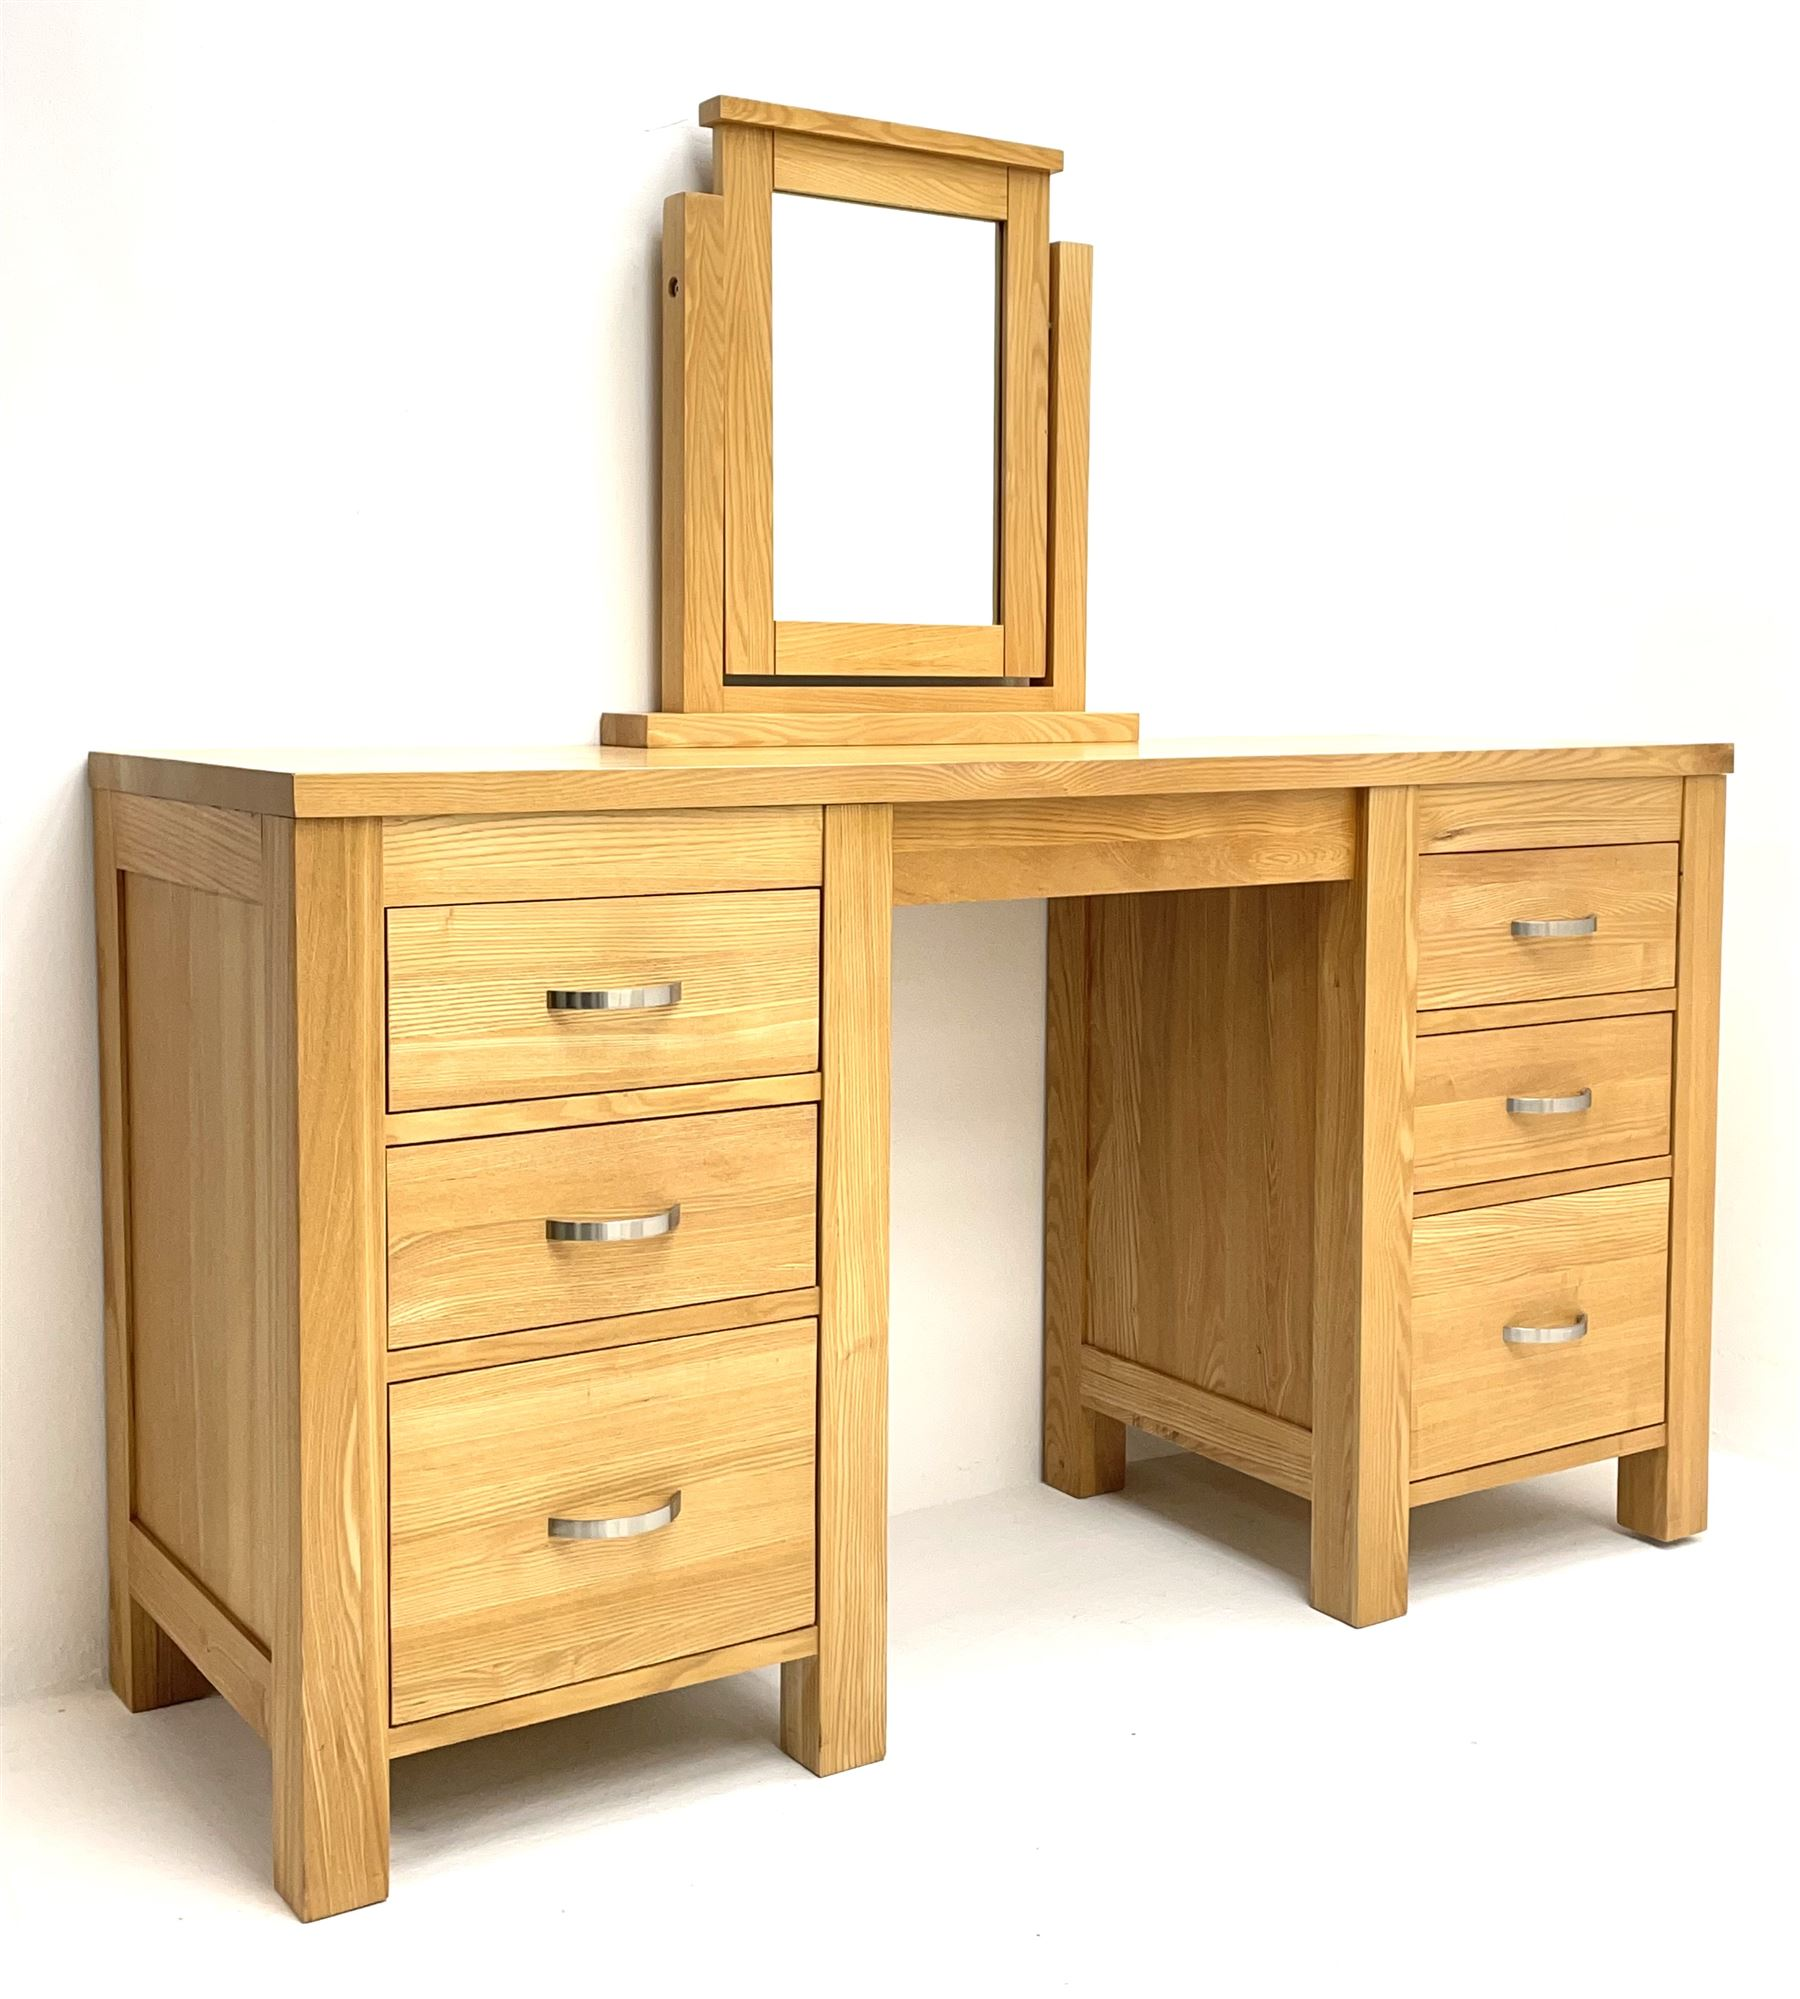 Light oak dressing table with mirror